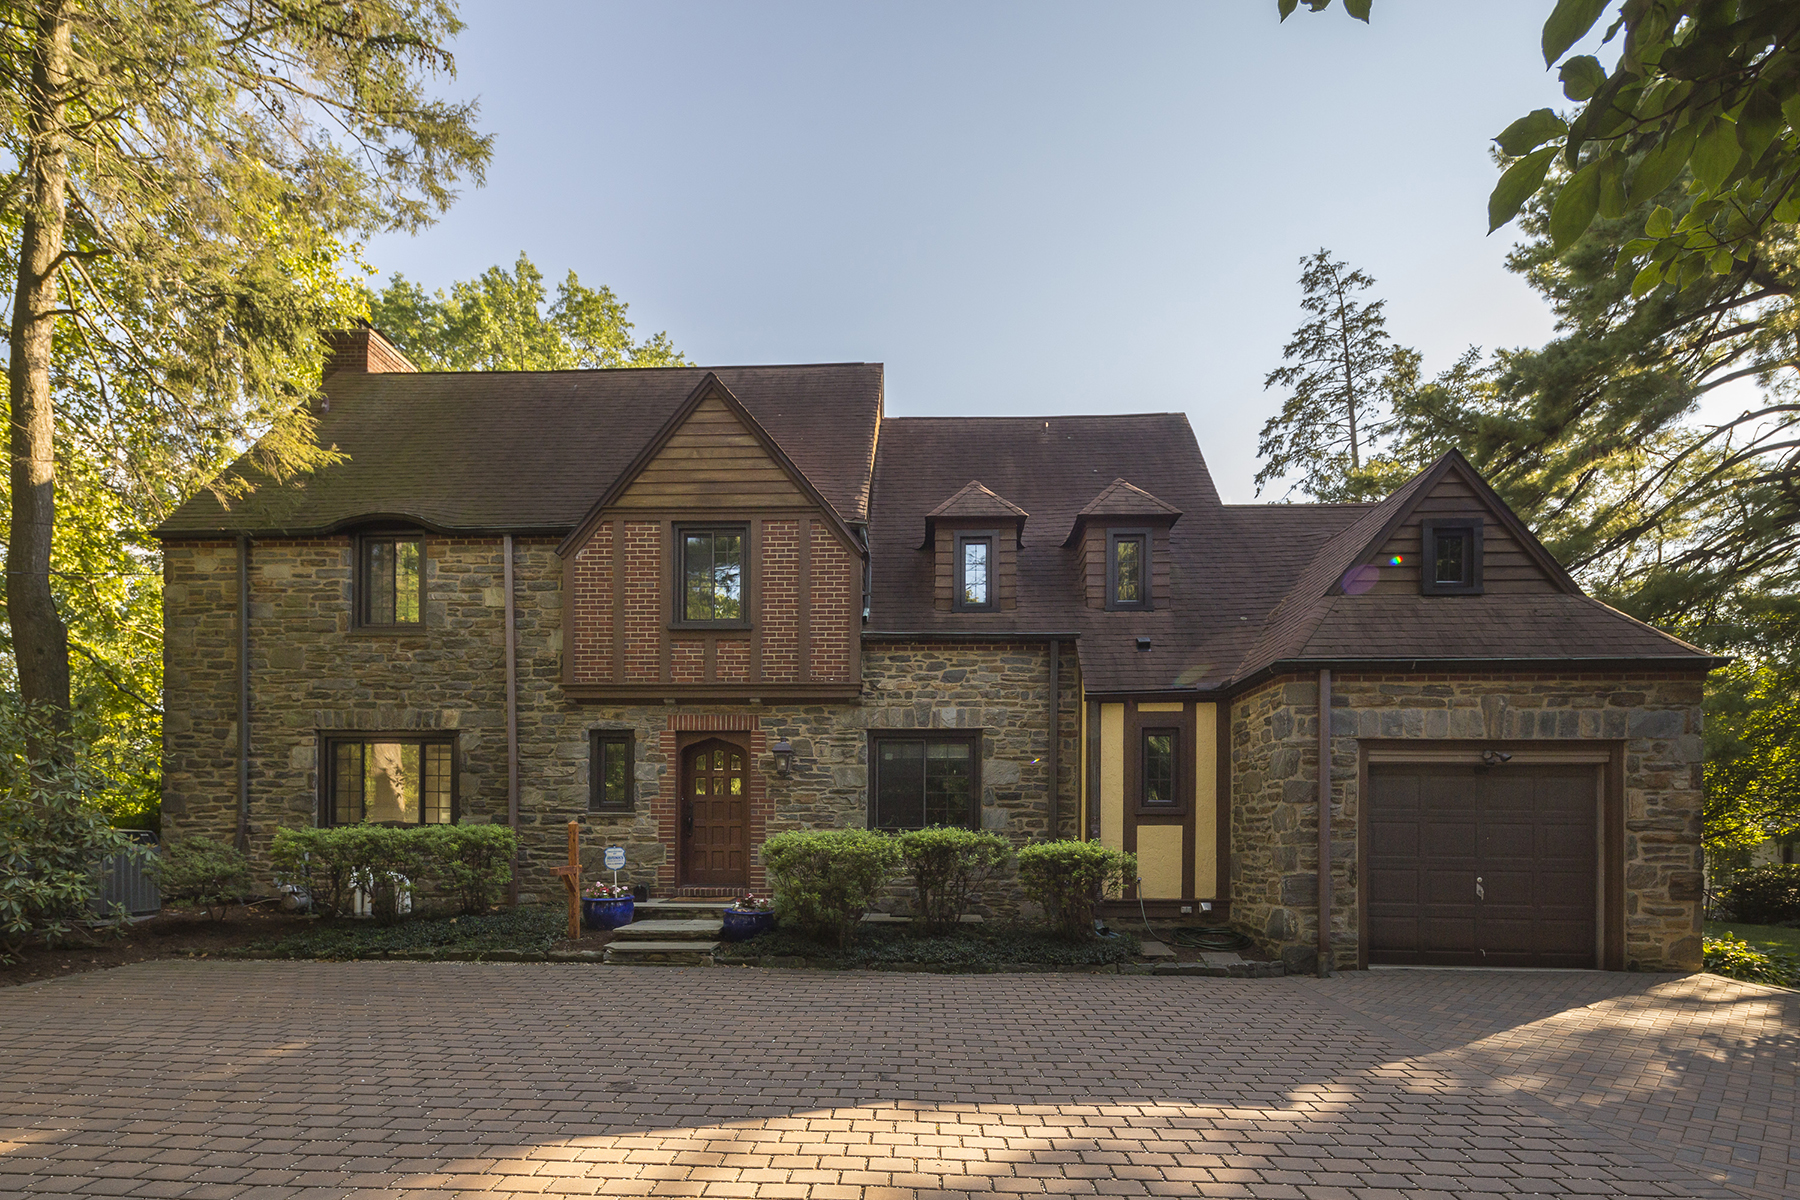 Single Family Home for Sale at Elegant Colonial Tudor 578 Montgomery Ave. Bryn Mawr, Pennsylvania 19010 United States